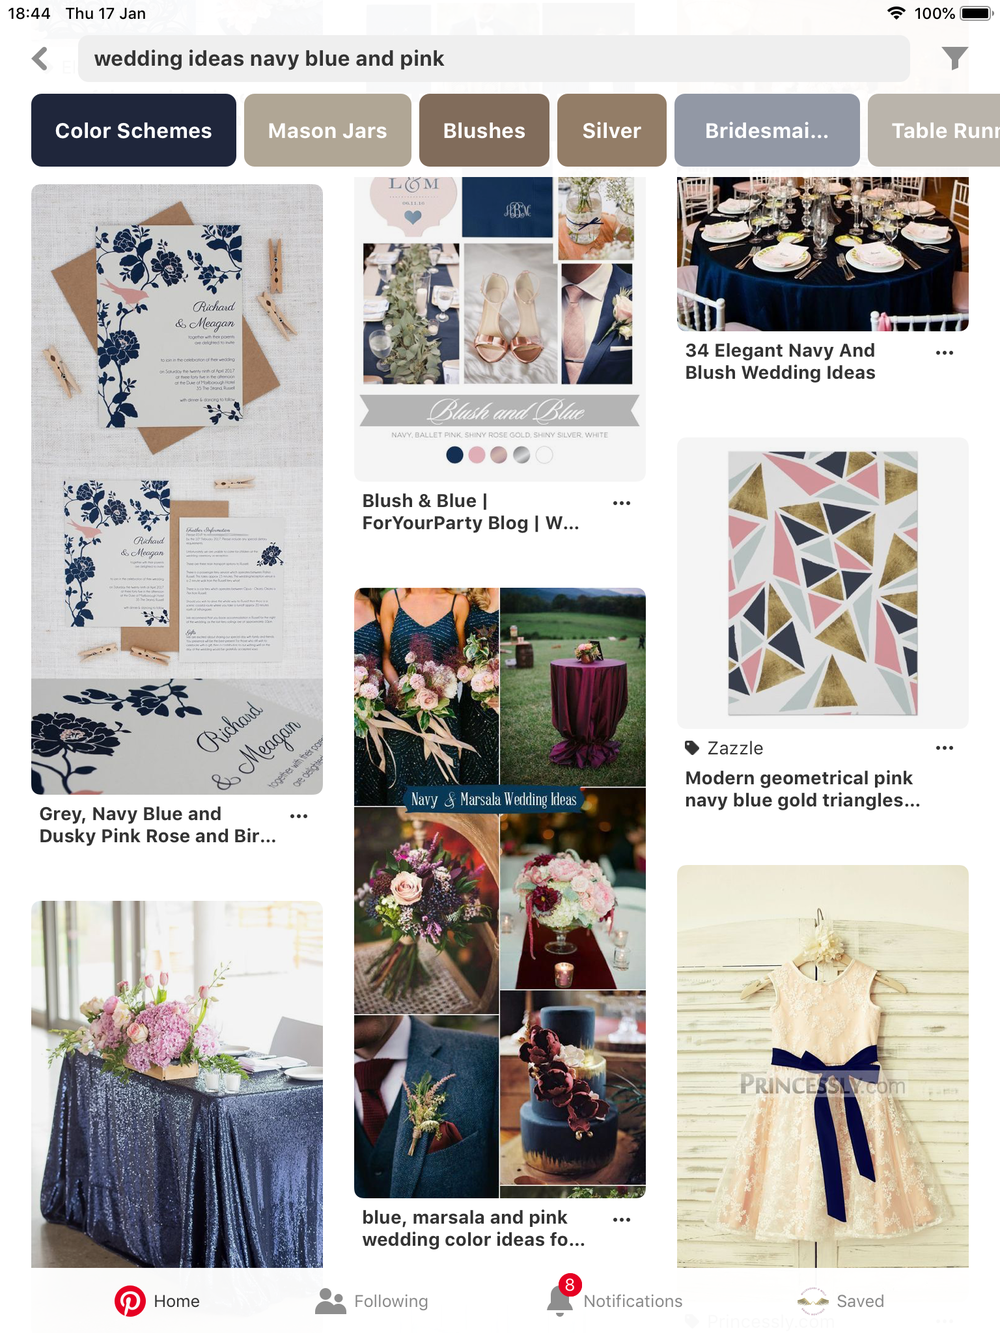 Pinterest is a great source of ideas to help you plan your wedding